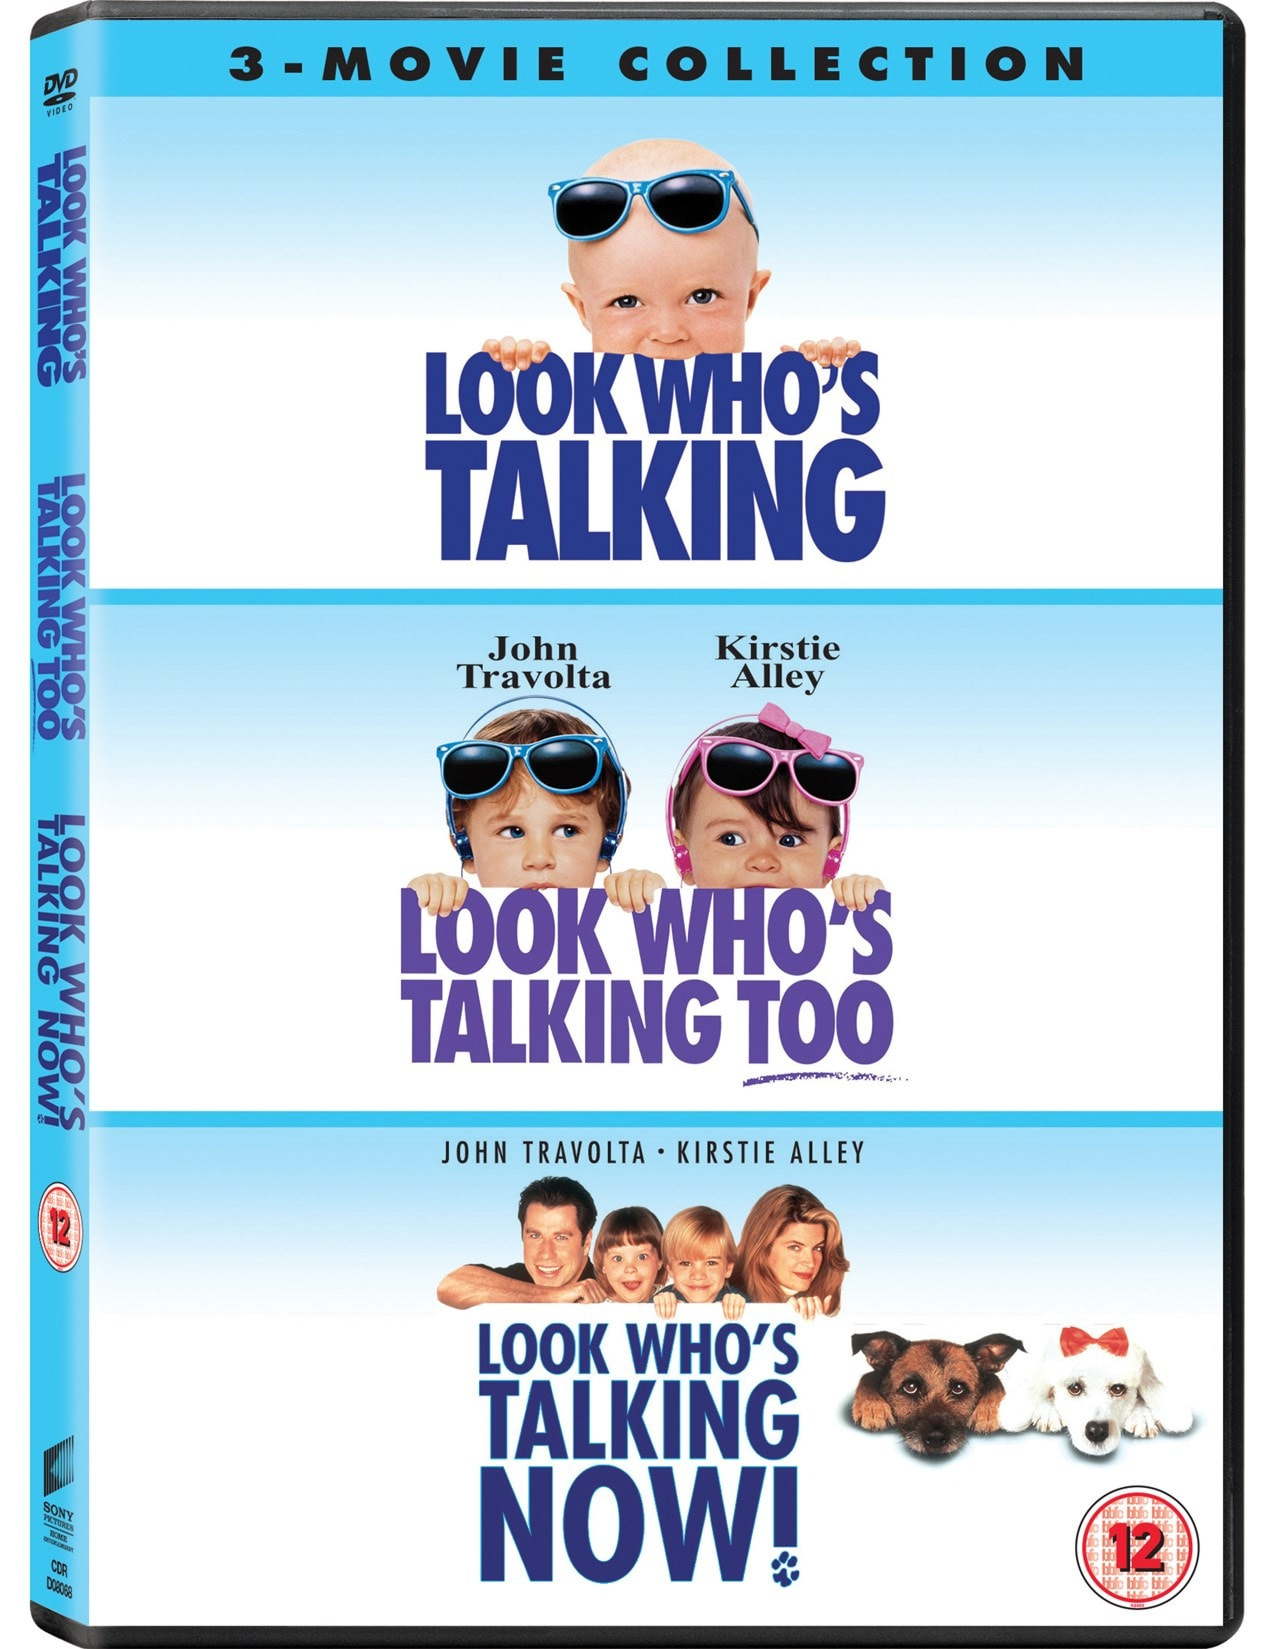 Look Who S Talking Look Who S Talking Too Look Who S Talking Now Dvd Box Set Free Shipping Over 20 Hmv Store